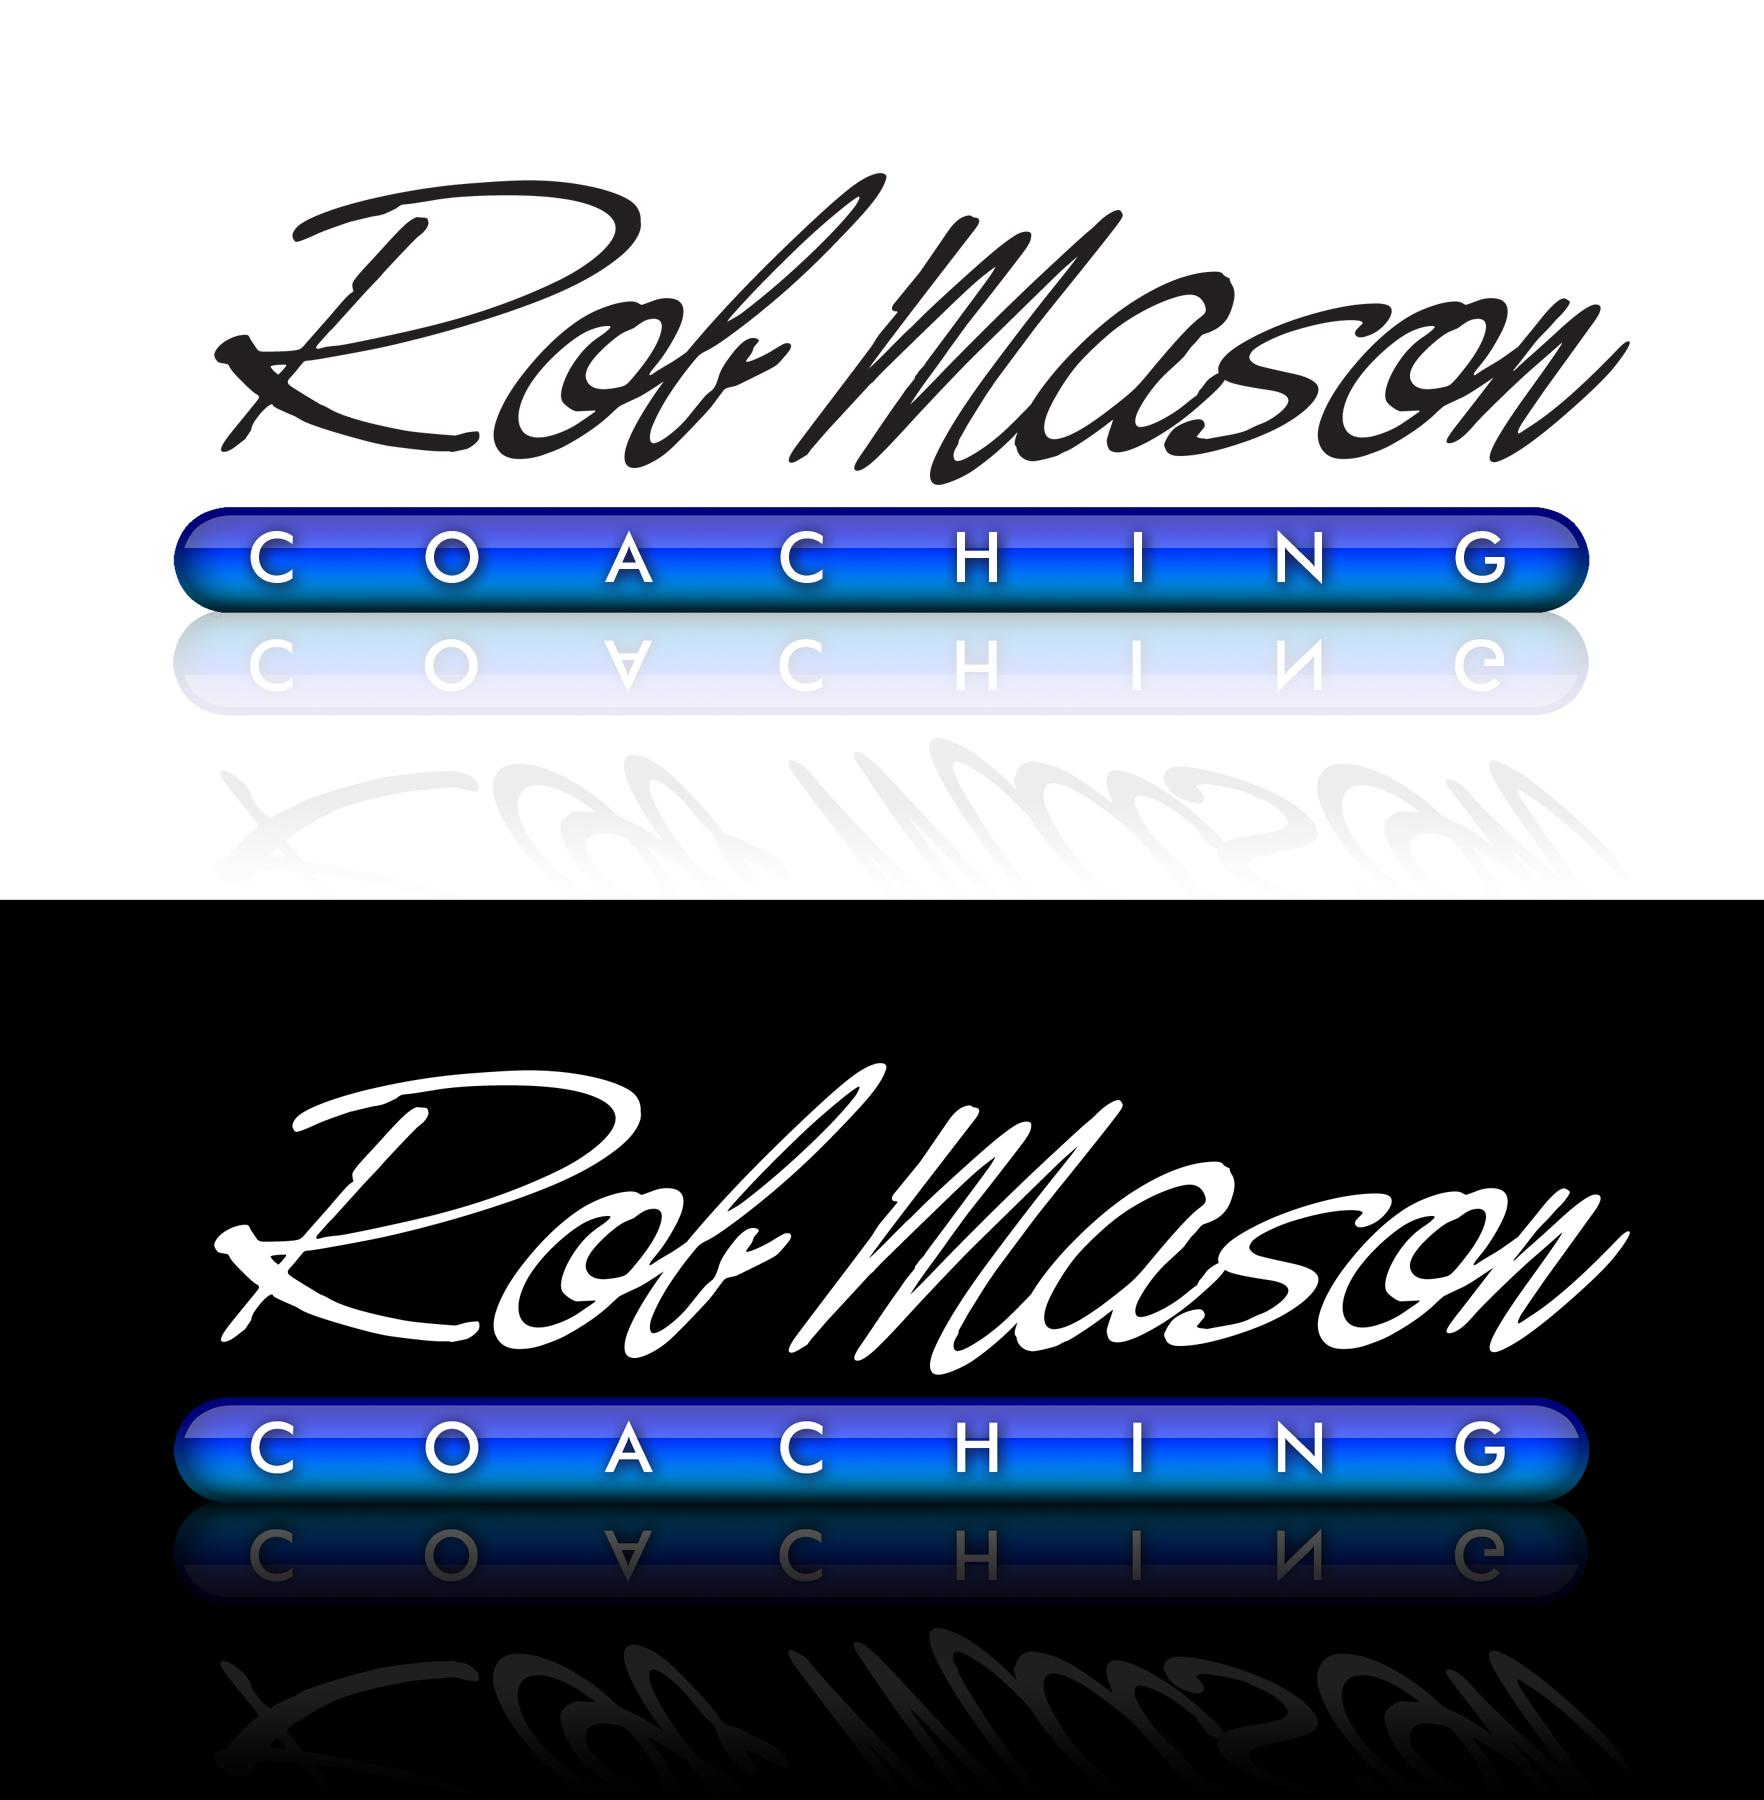 Logo Design by moidgreat - Entry No. 15 in the Logo Design Contest New Logo Design Needed for Exciting Company Rob Mason Coaching.